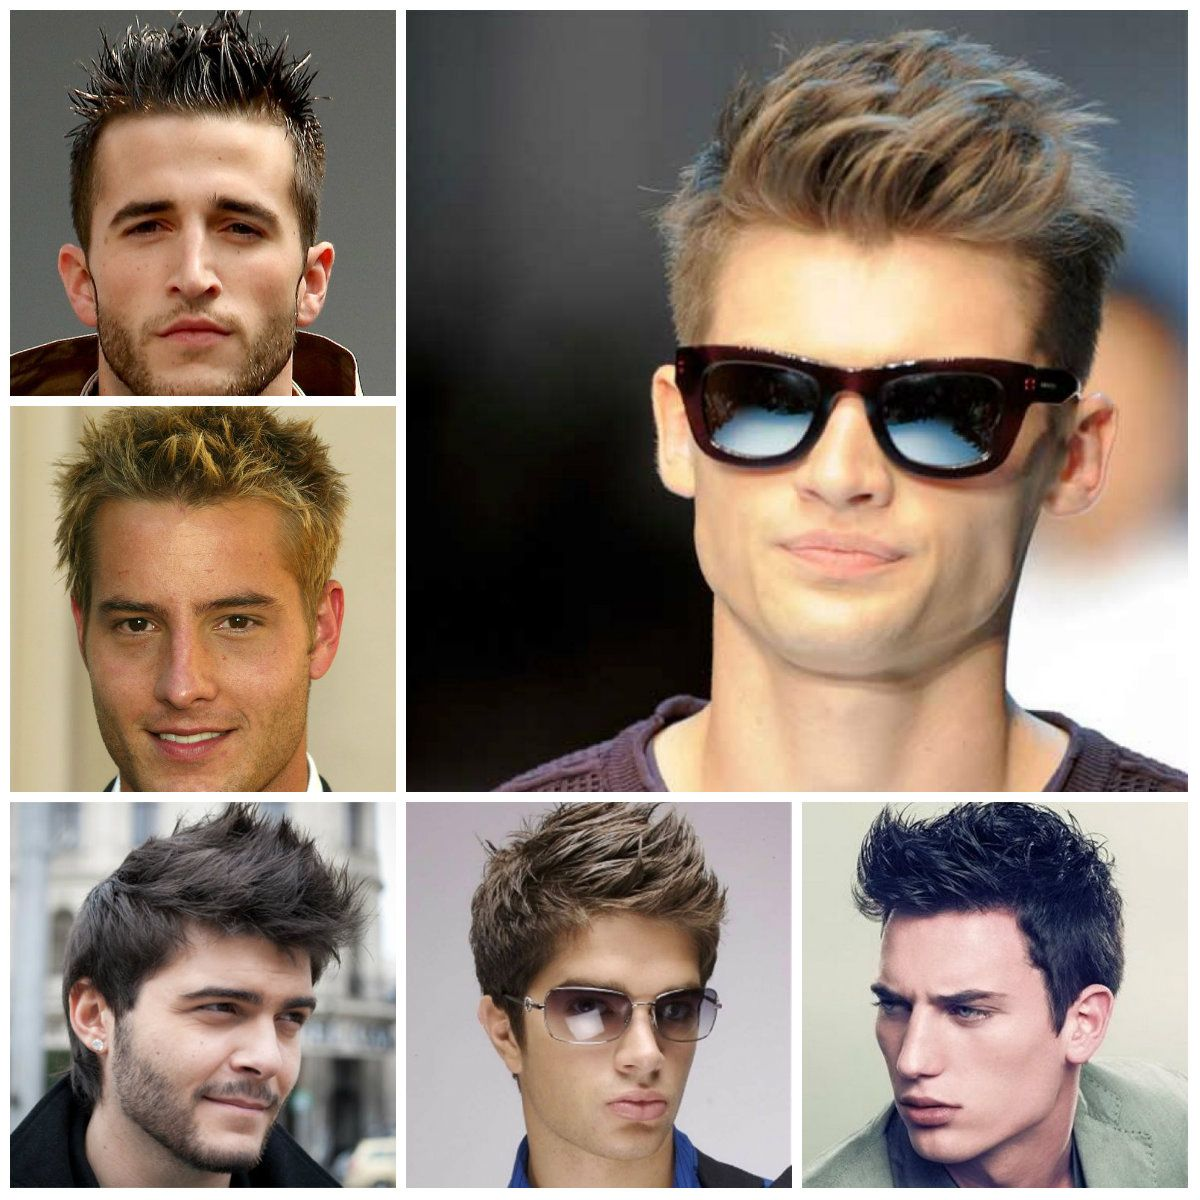 Different Hairstyles For Men   MEN HAIRSTYLES   Pinterest as well 25  best Haircuts for men ideas on Pinterest   Mens hairstyles in addition Hair Types for Men Guide   Best Hairstyles for Men besides 16 best Mens HairCut images on Pinterest   Men's haircuts further 101 Different Inspirational Haircuts for Men in 2017 moreover 101 Different Inspirational Haircuts for Men in 2017 together with Type Of Haircut For Men   Latest Men Haircuts in addition Types Of Mens Haircuts Mens Hair 3 Different Hairstyles 3 additionally  besides  also Top 5 Undercut Hairstyles For Men. on different styles of haircut for men